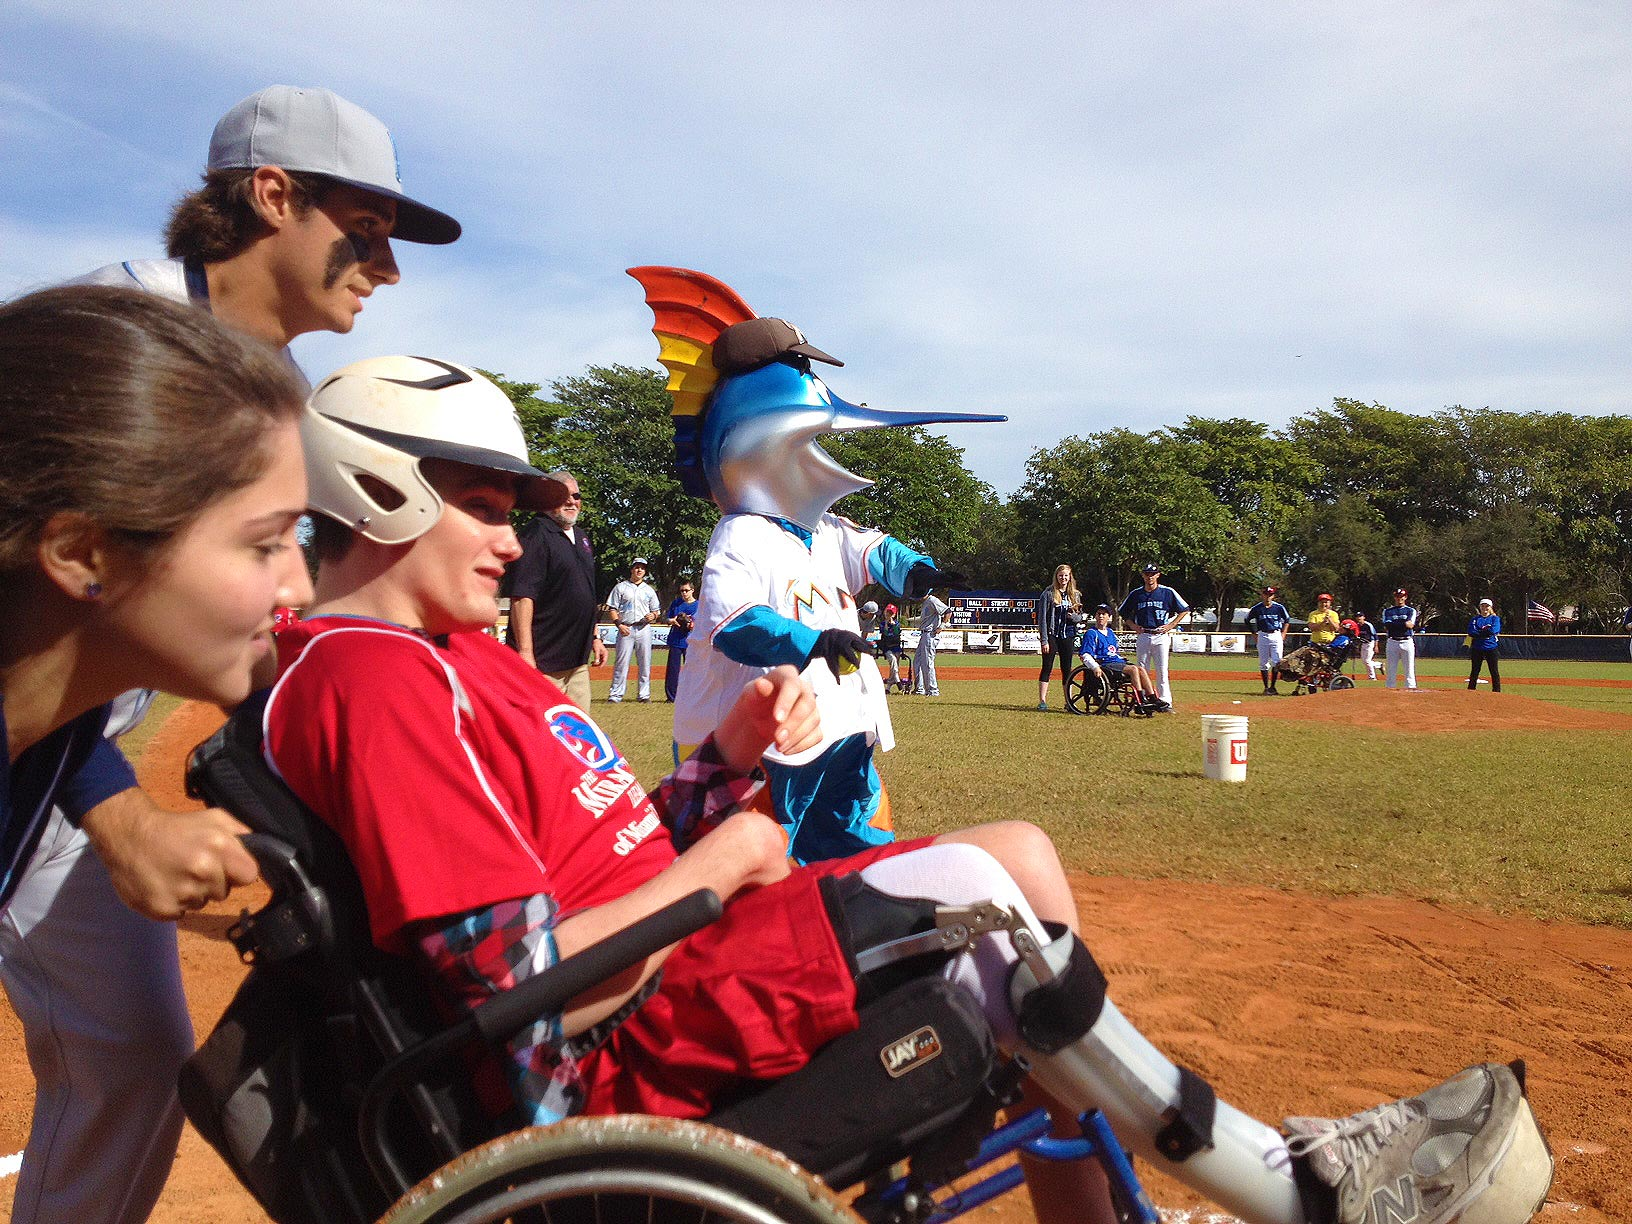 Cameron Honey gets a hit as Billy the Marlin cheers him on in the Miracle League game.